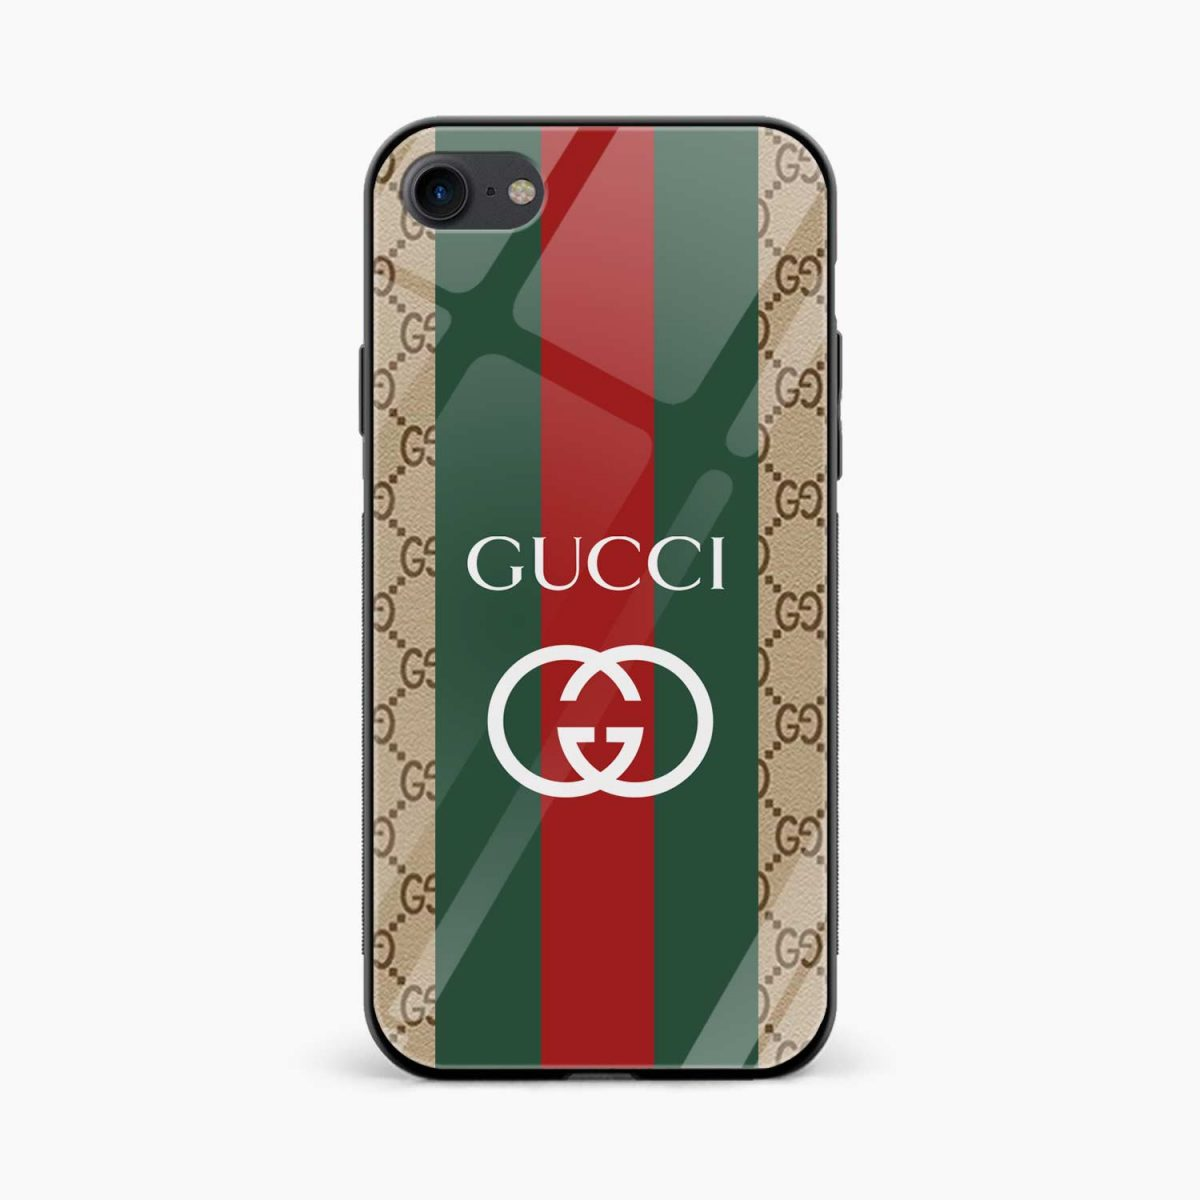 gucci strips pattern front view apple iphone 6 7 8 se back cover